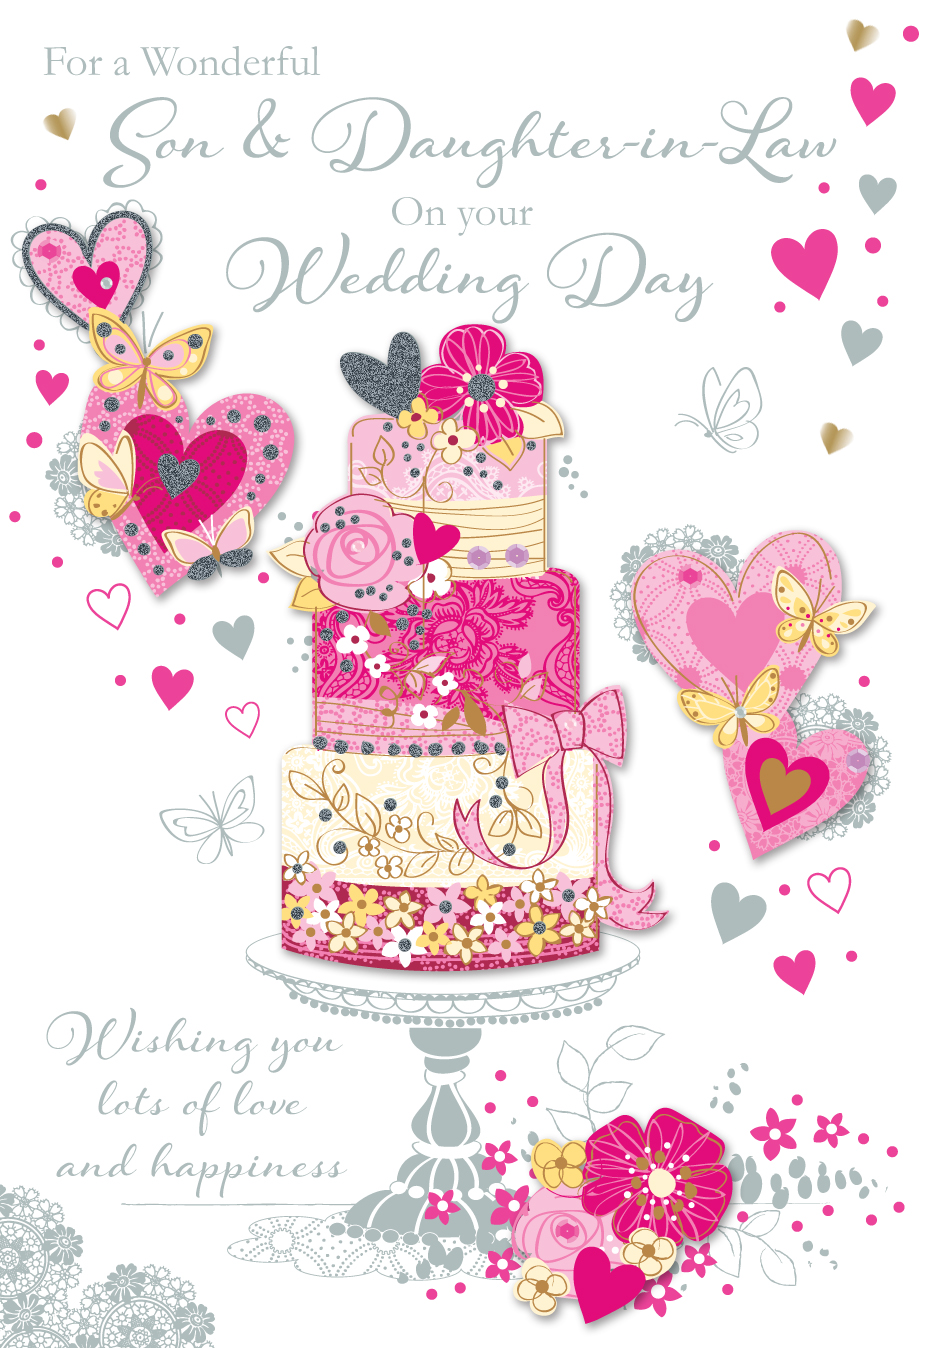 Son daughter in law wedding day greeting card cards love kates son daughter in law wedding day greeting card m4hsunfo